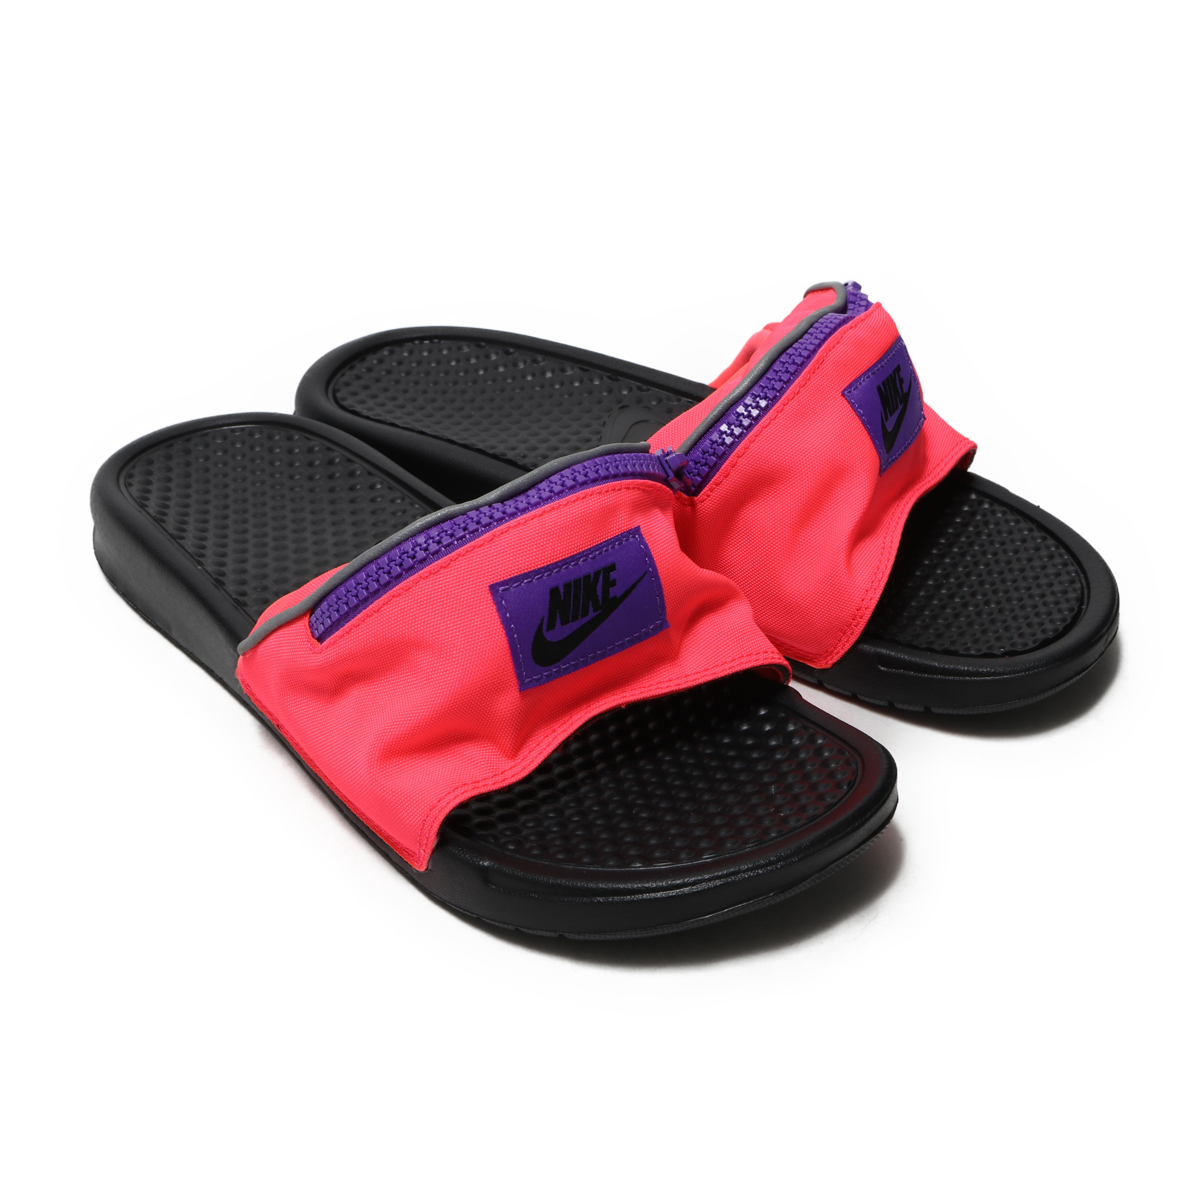 4561093a578e NIKE BENASSI JDI FANNY PACK (ナイキベナッシ JDI Fannie pack) HYPER PUNCH BLACK- HYPER GRAPE 18FW-I